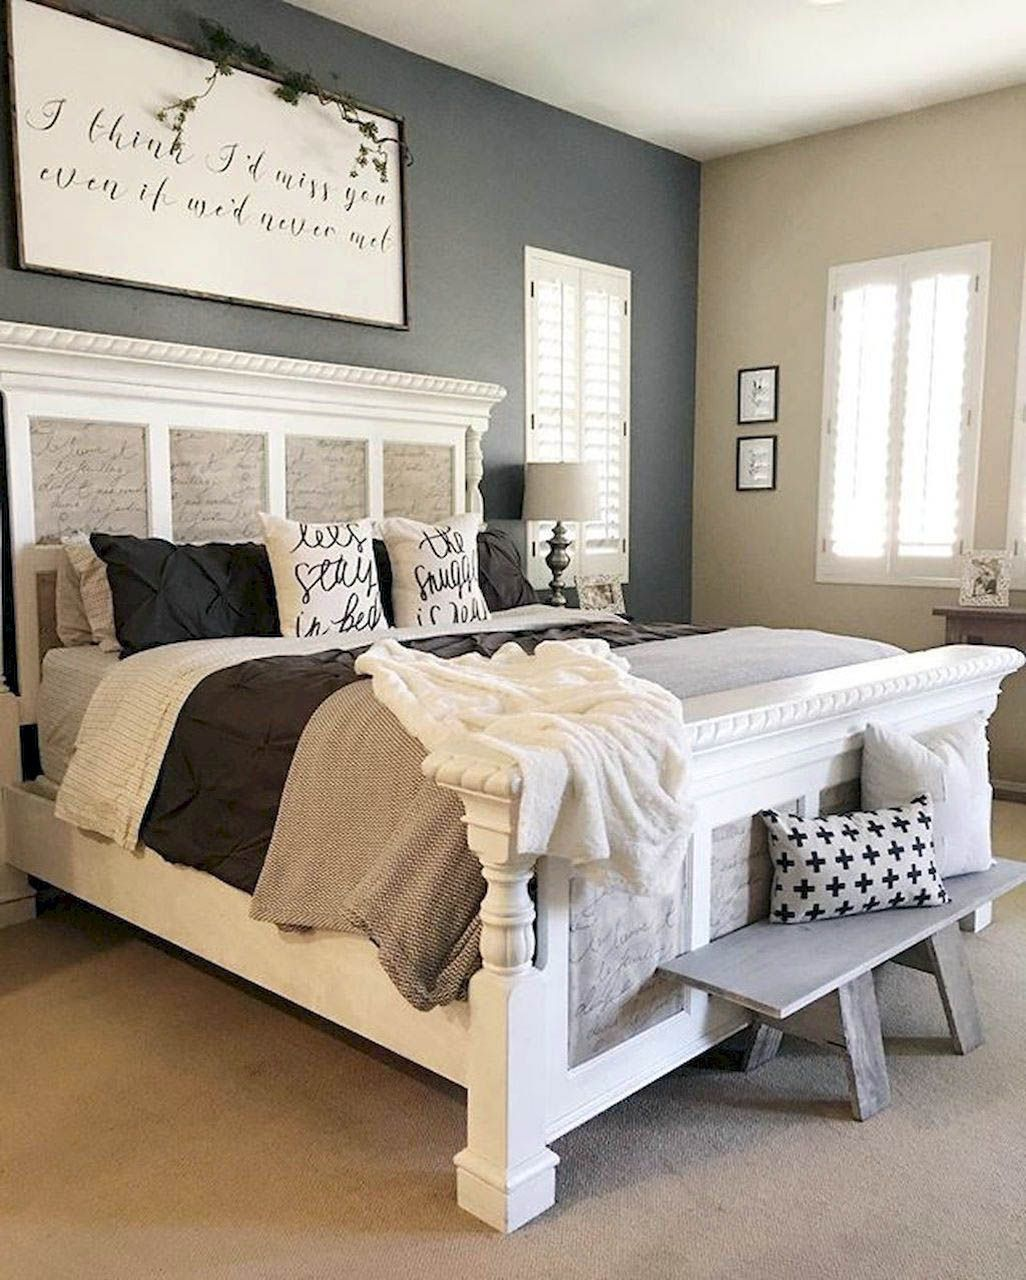 Cute Best Bedroom Decorating Ideas For 2019 Modern Farmhouse Master Bedroom Master Bedroom Remodel Remodel Bedroom